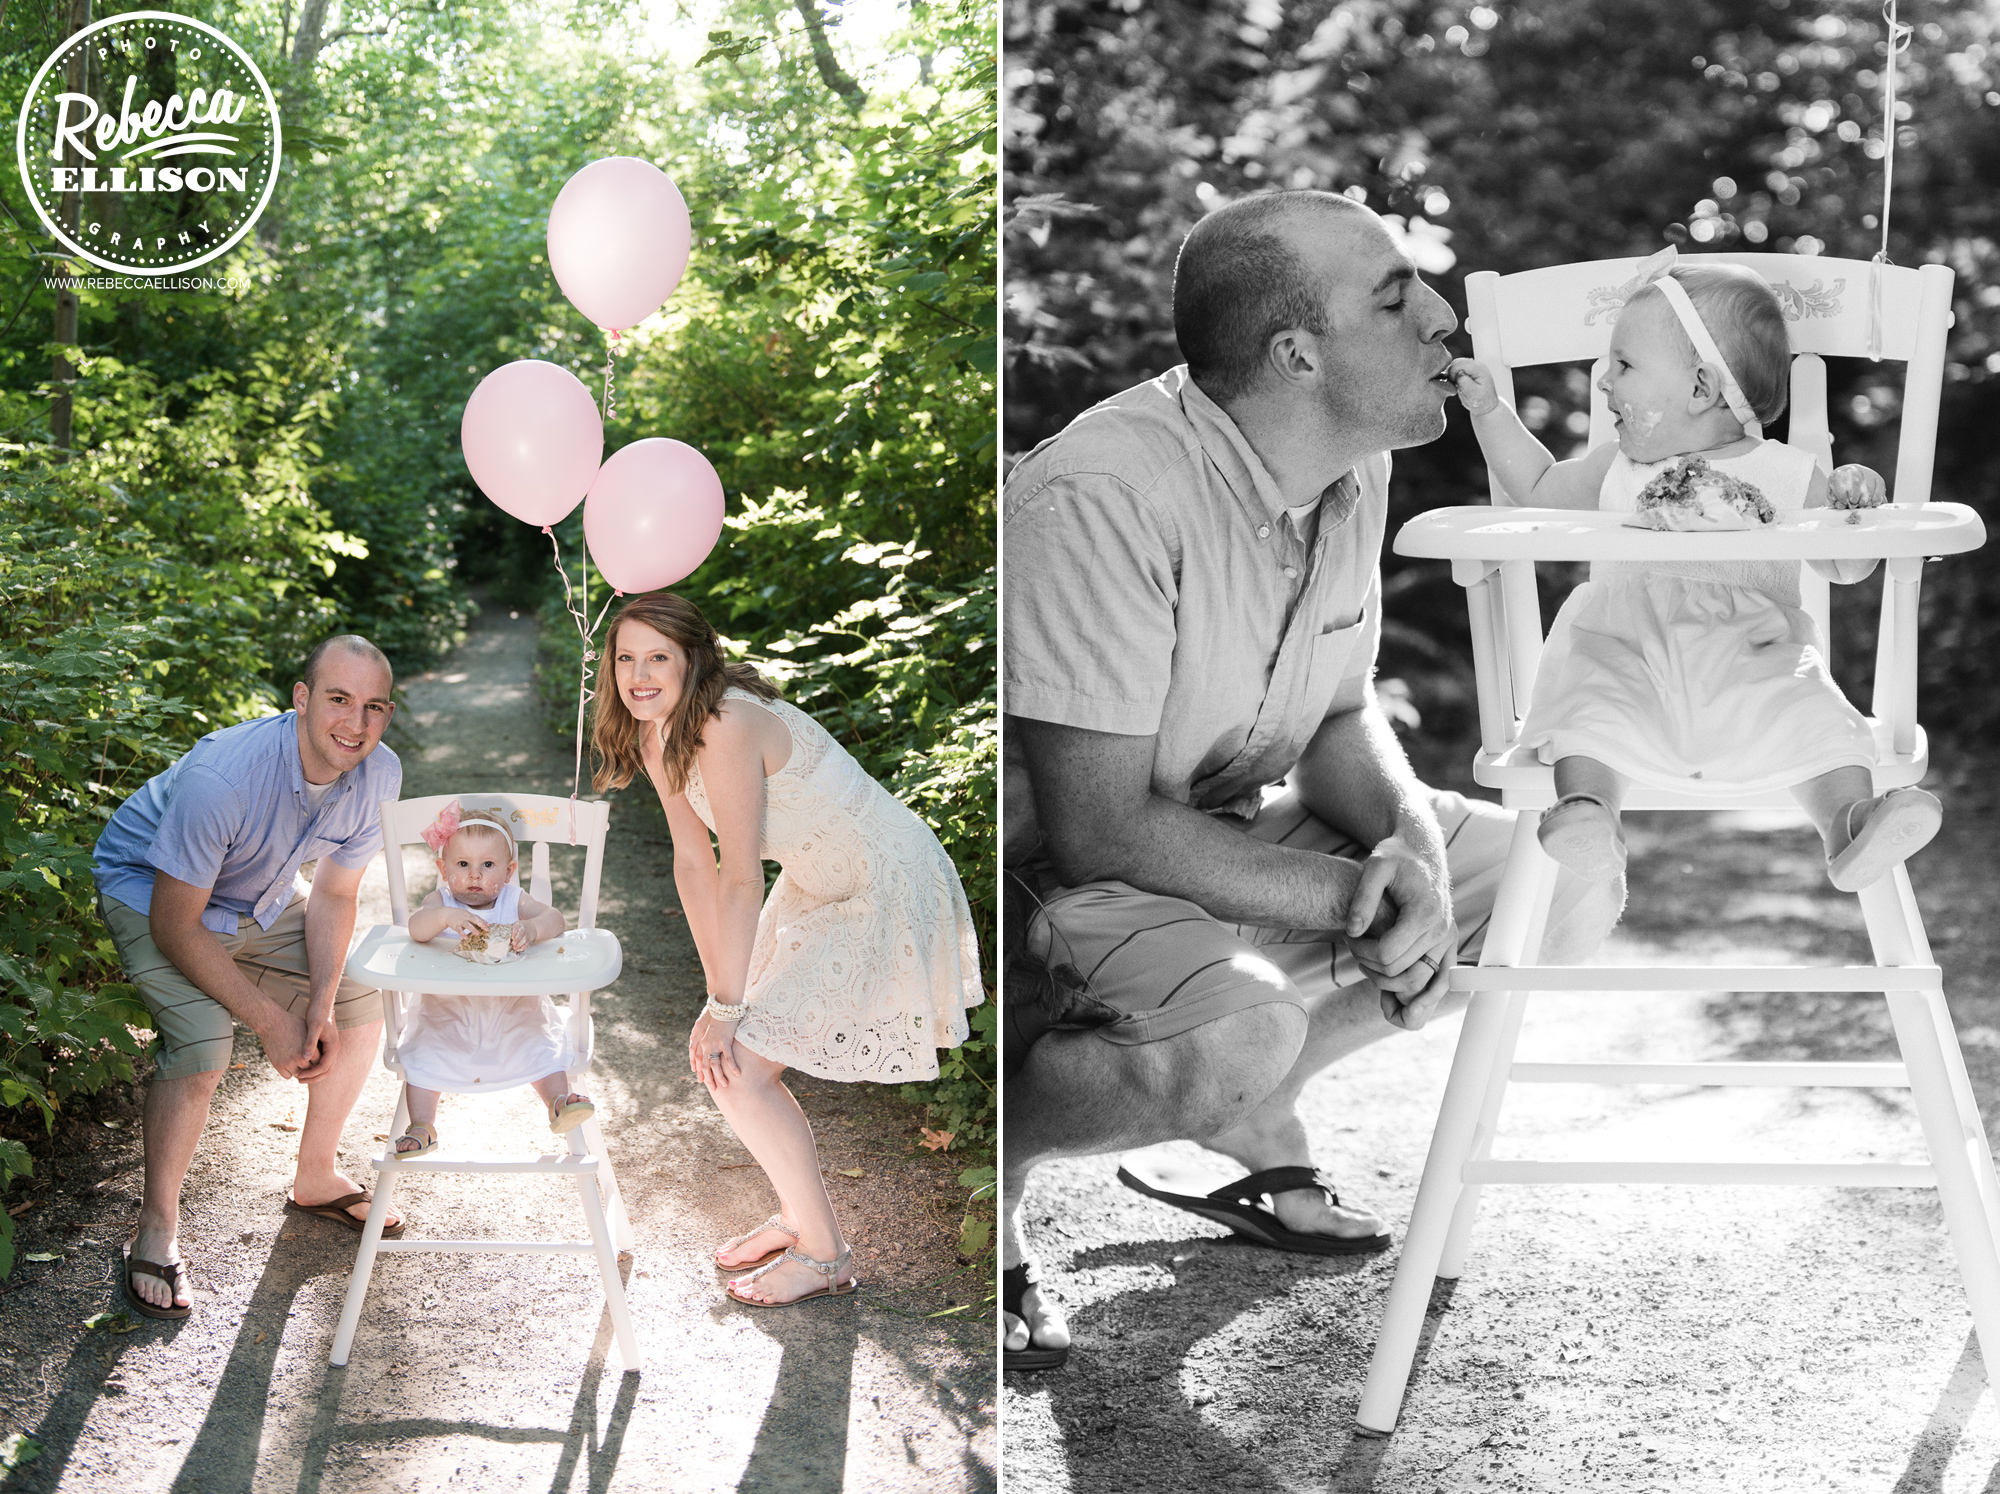 First Birthday Cake smash with mom and dad at Carkeek Park during outdoor family photos by Seattle family photographer Rebecca Ellison